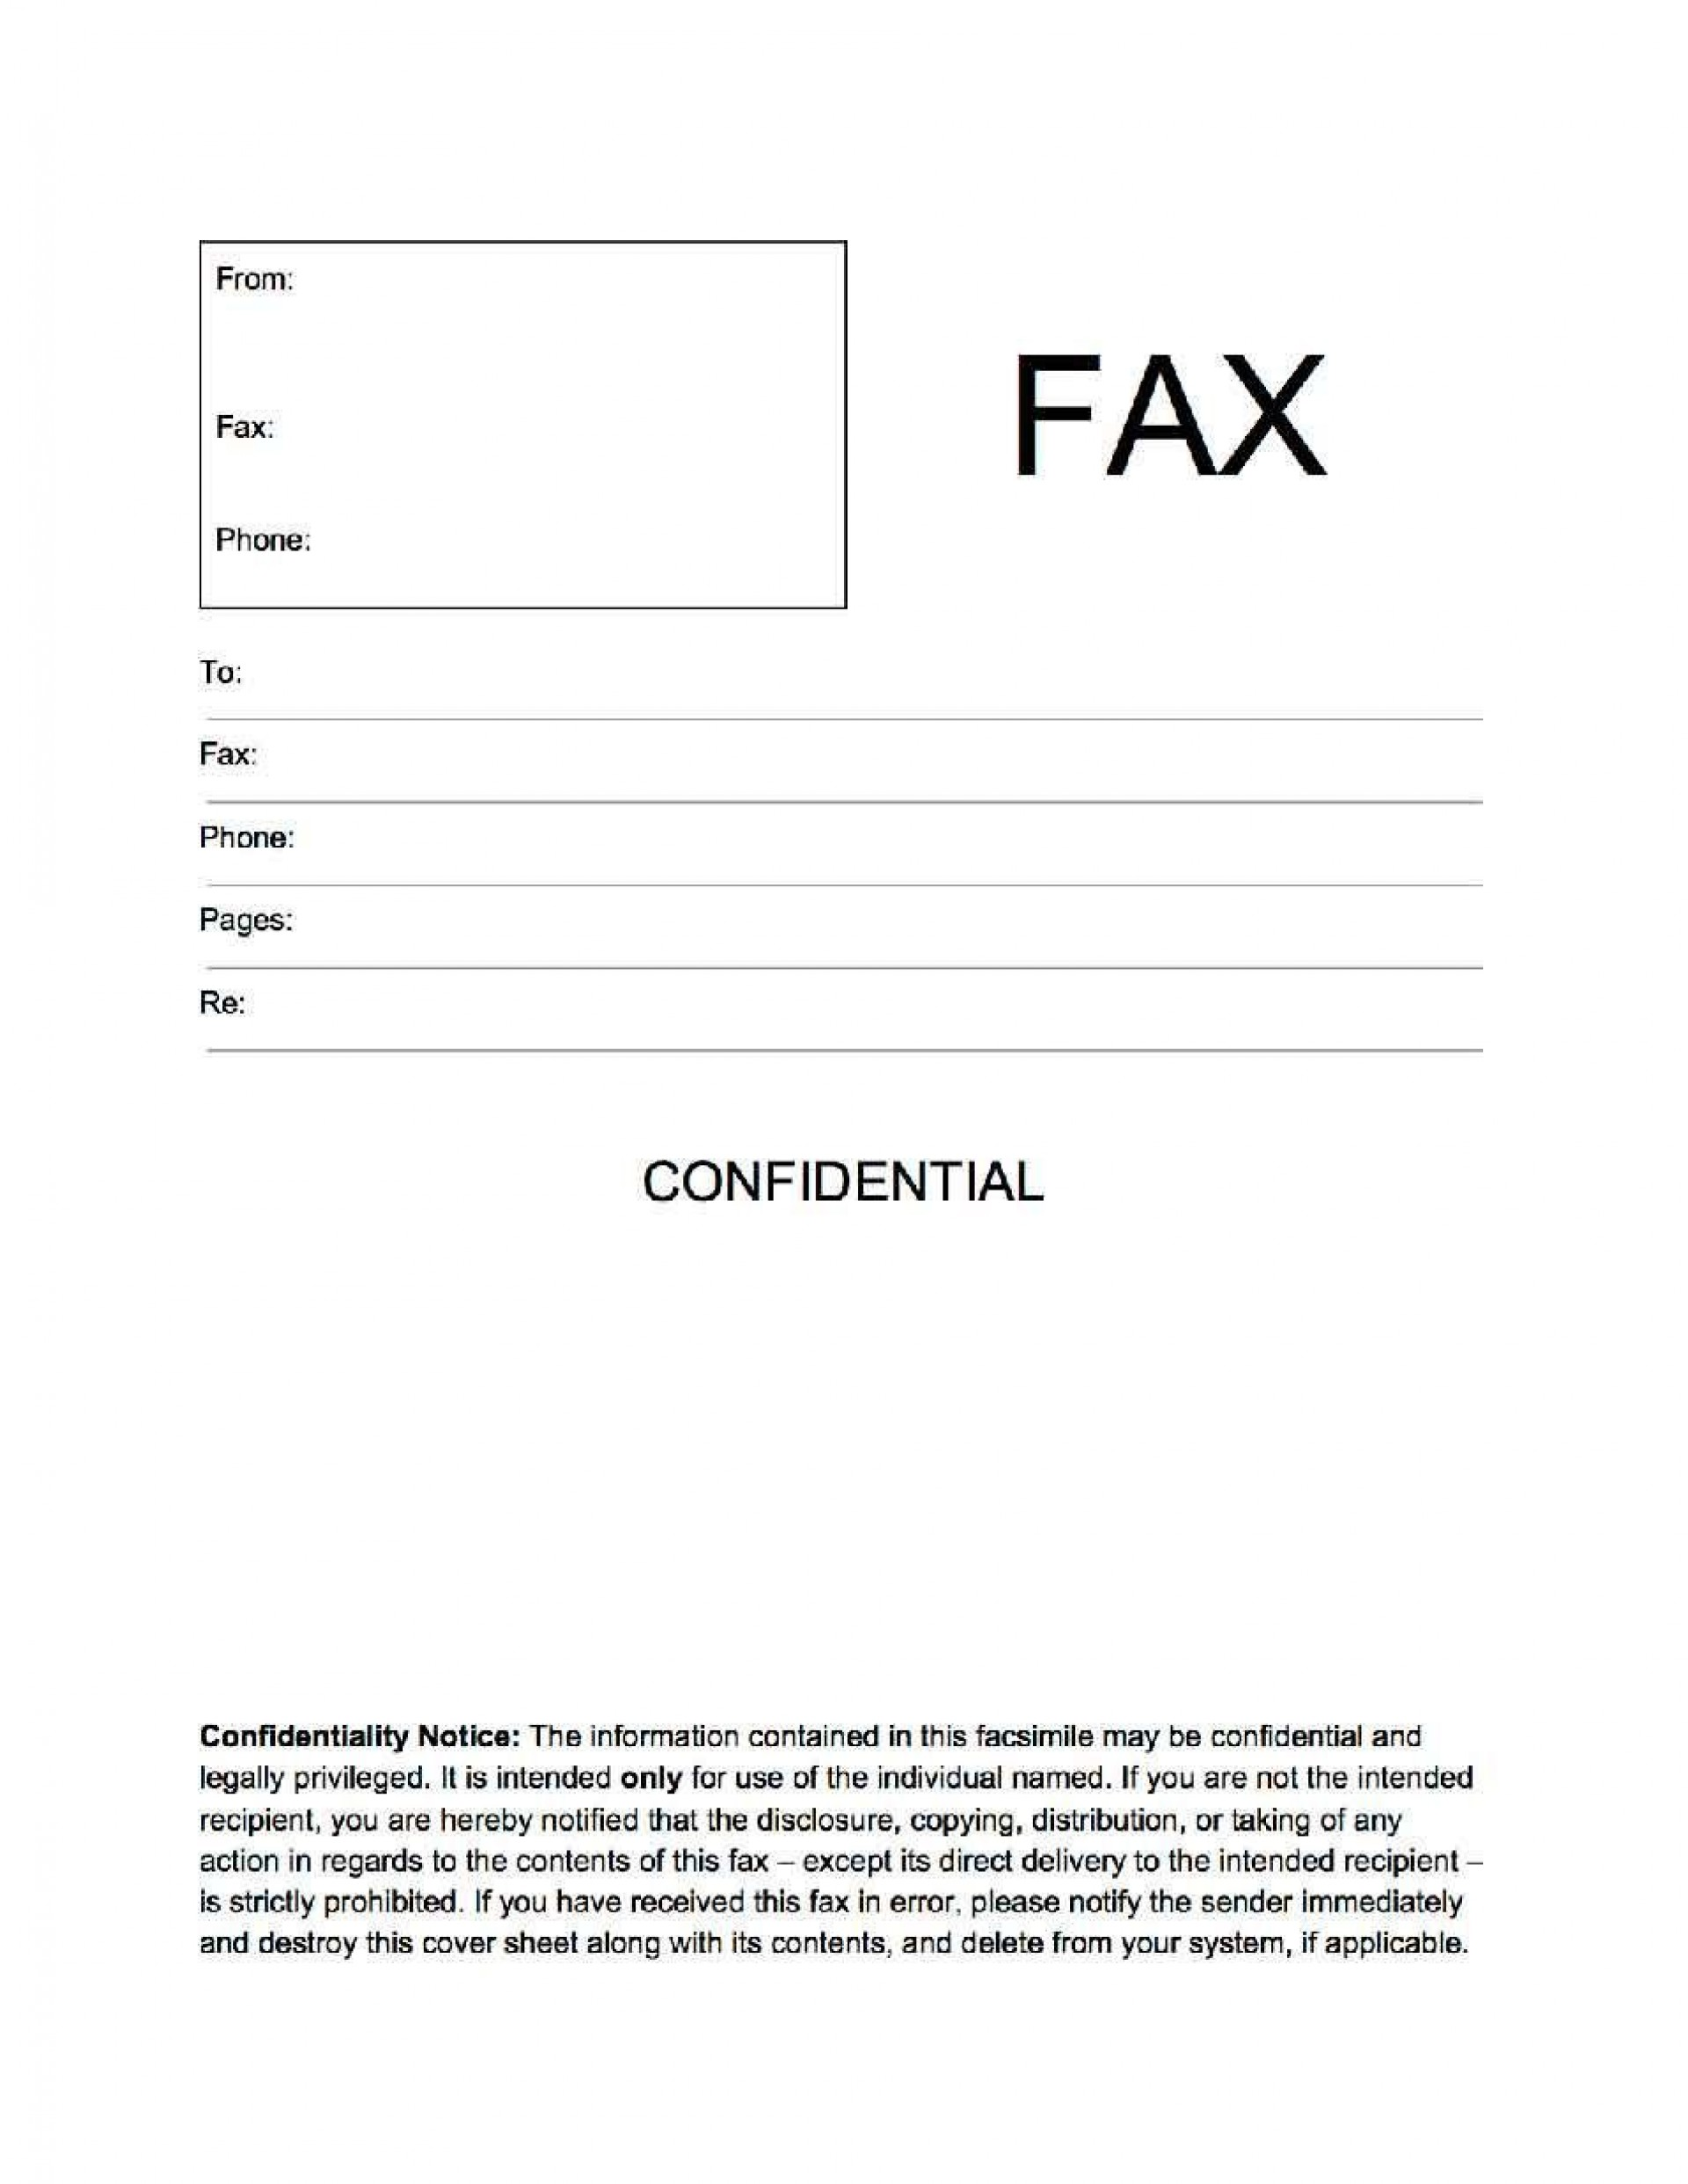 002 Unbelievable General Fax Cover Letter Template Concept  Sheet Word Confidential Example1920